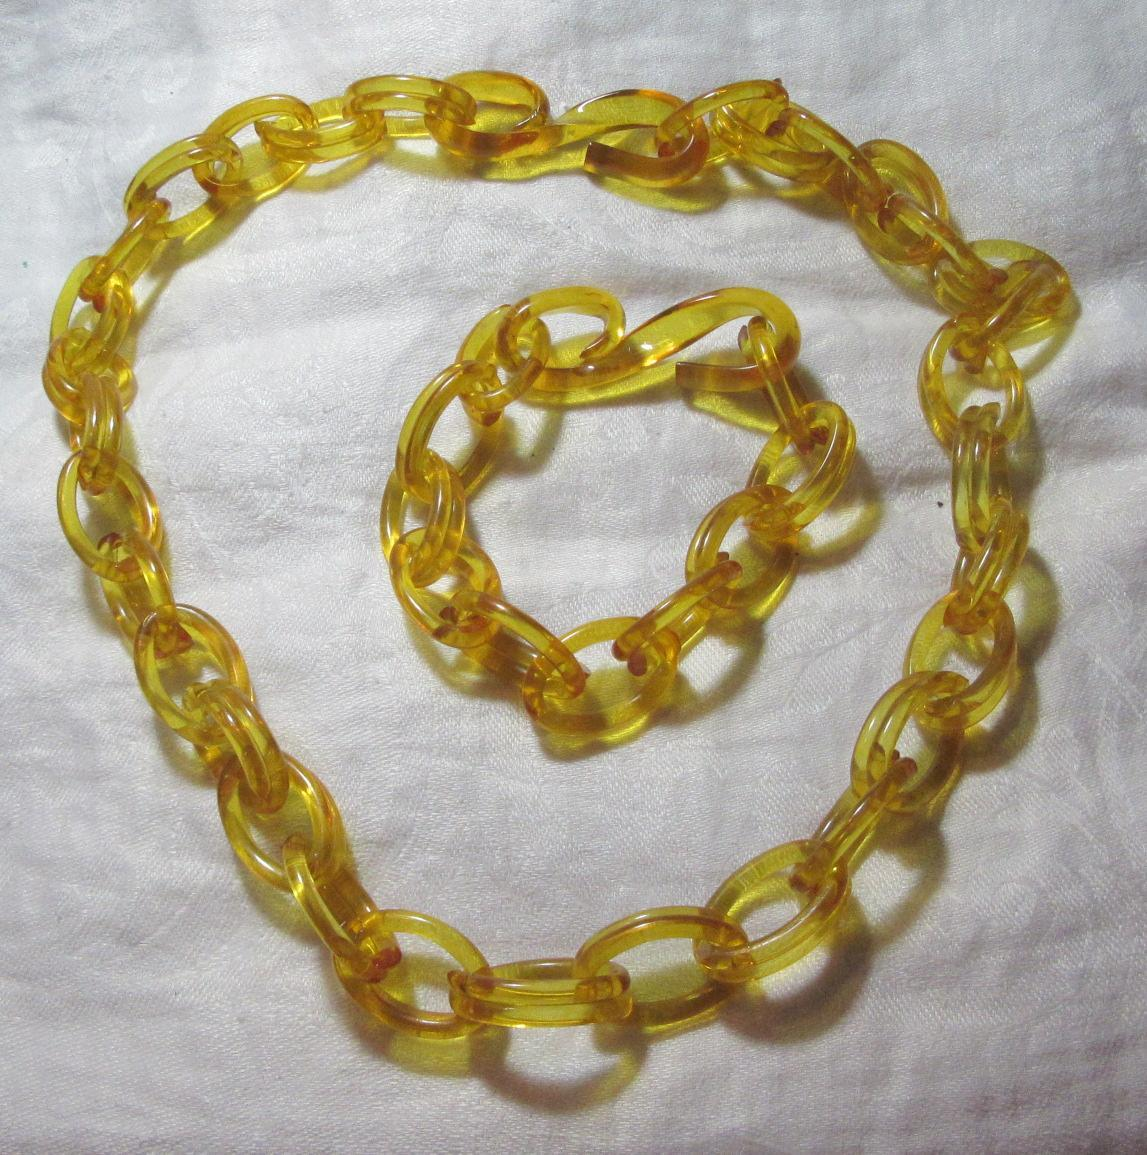 Golden Yellow Vintage Lucite Chunky Chain Necklace & Bracelet Set Fine Vintage Costume Jewelry